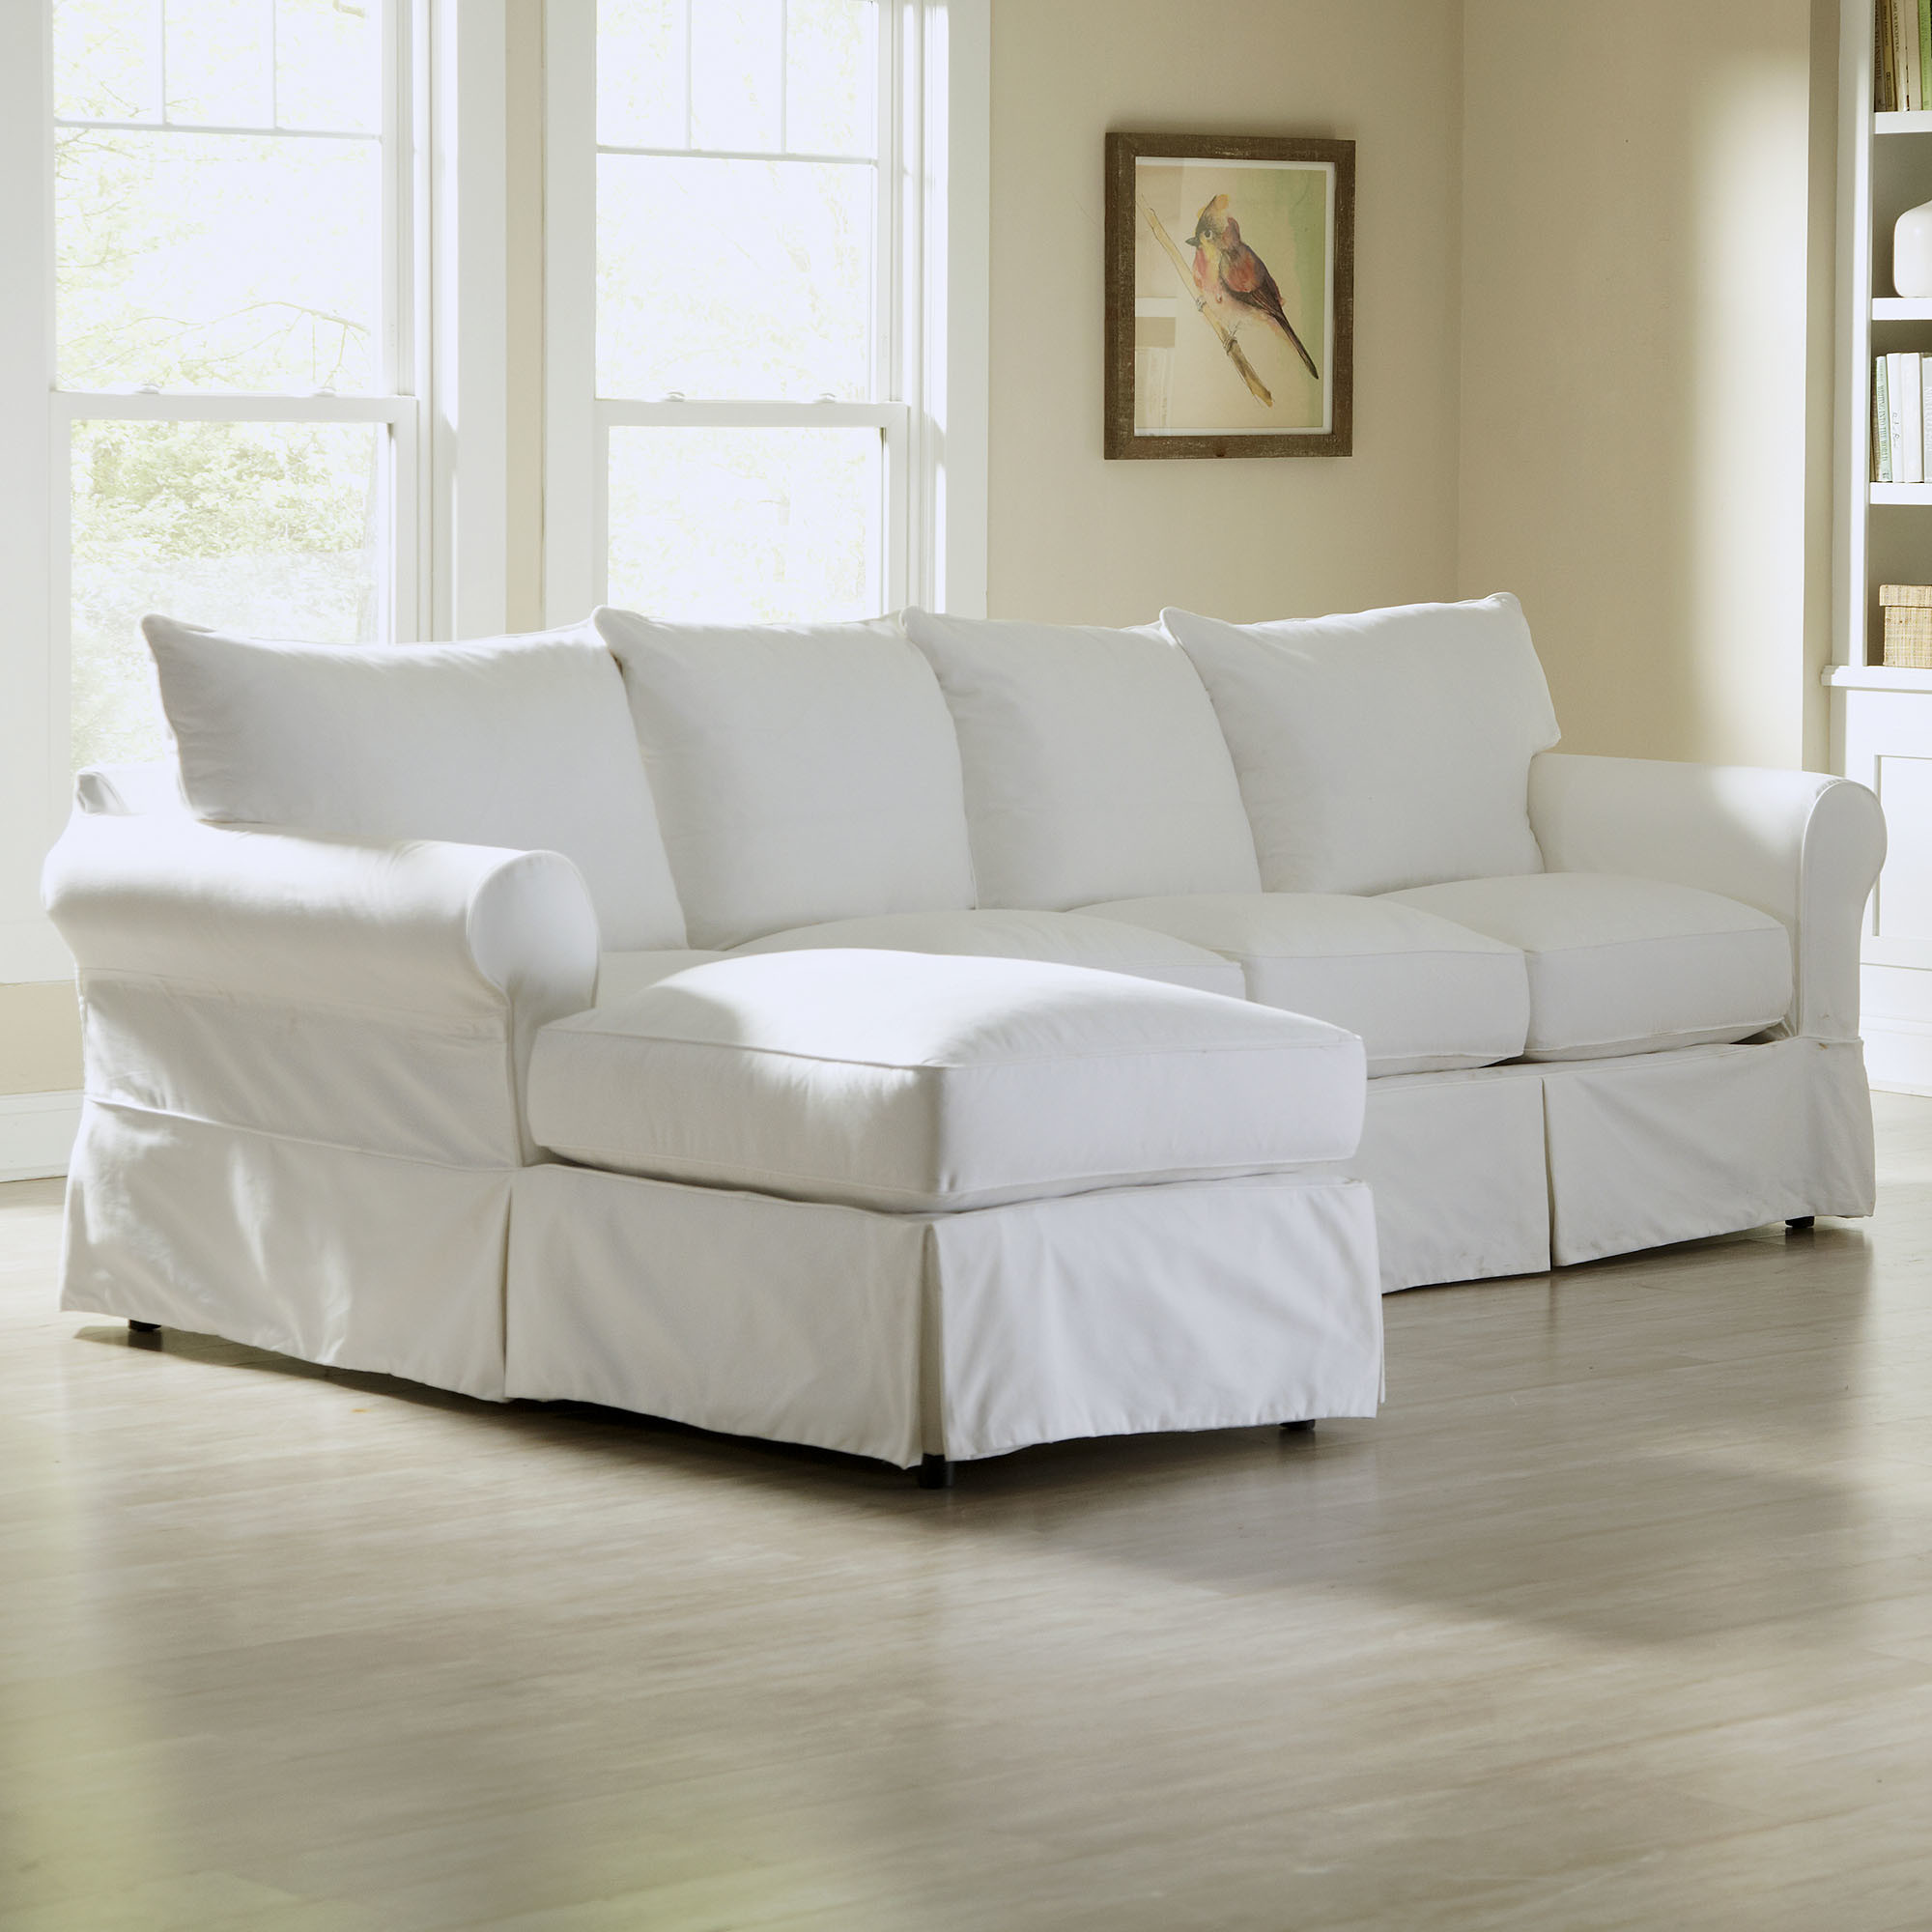 Sectional Sleeper Sofa Ashley | Sectional Sleeper Sofa | Sectional Sleeper Sofas for Small Spaces